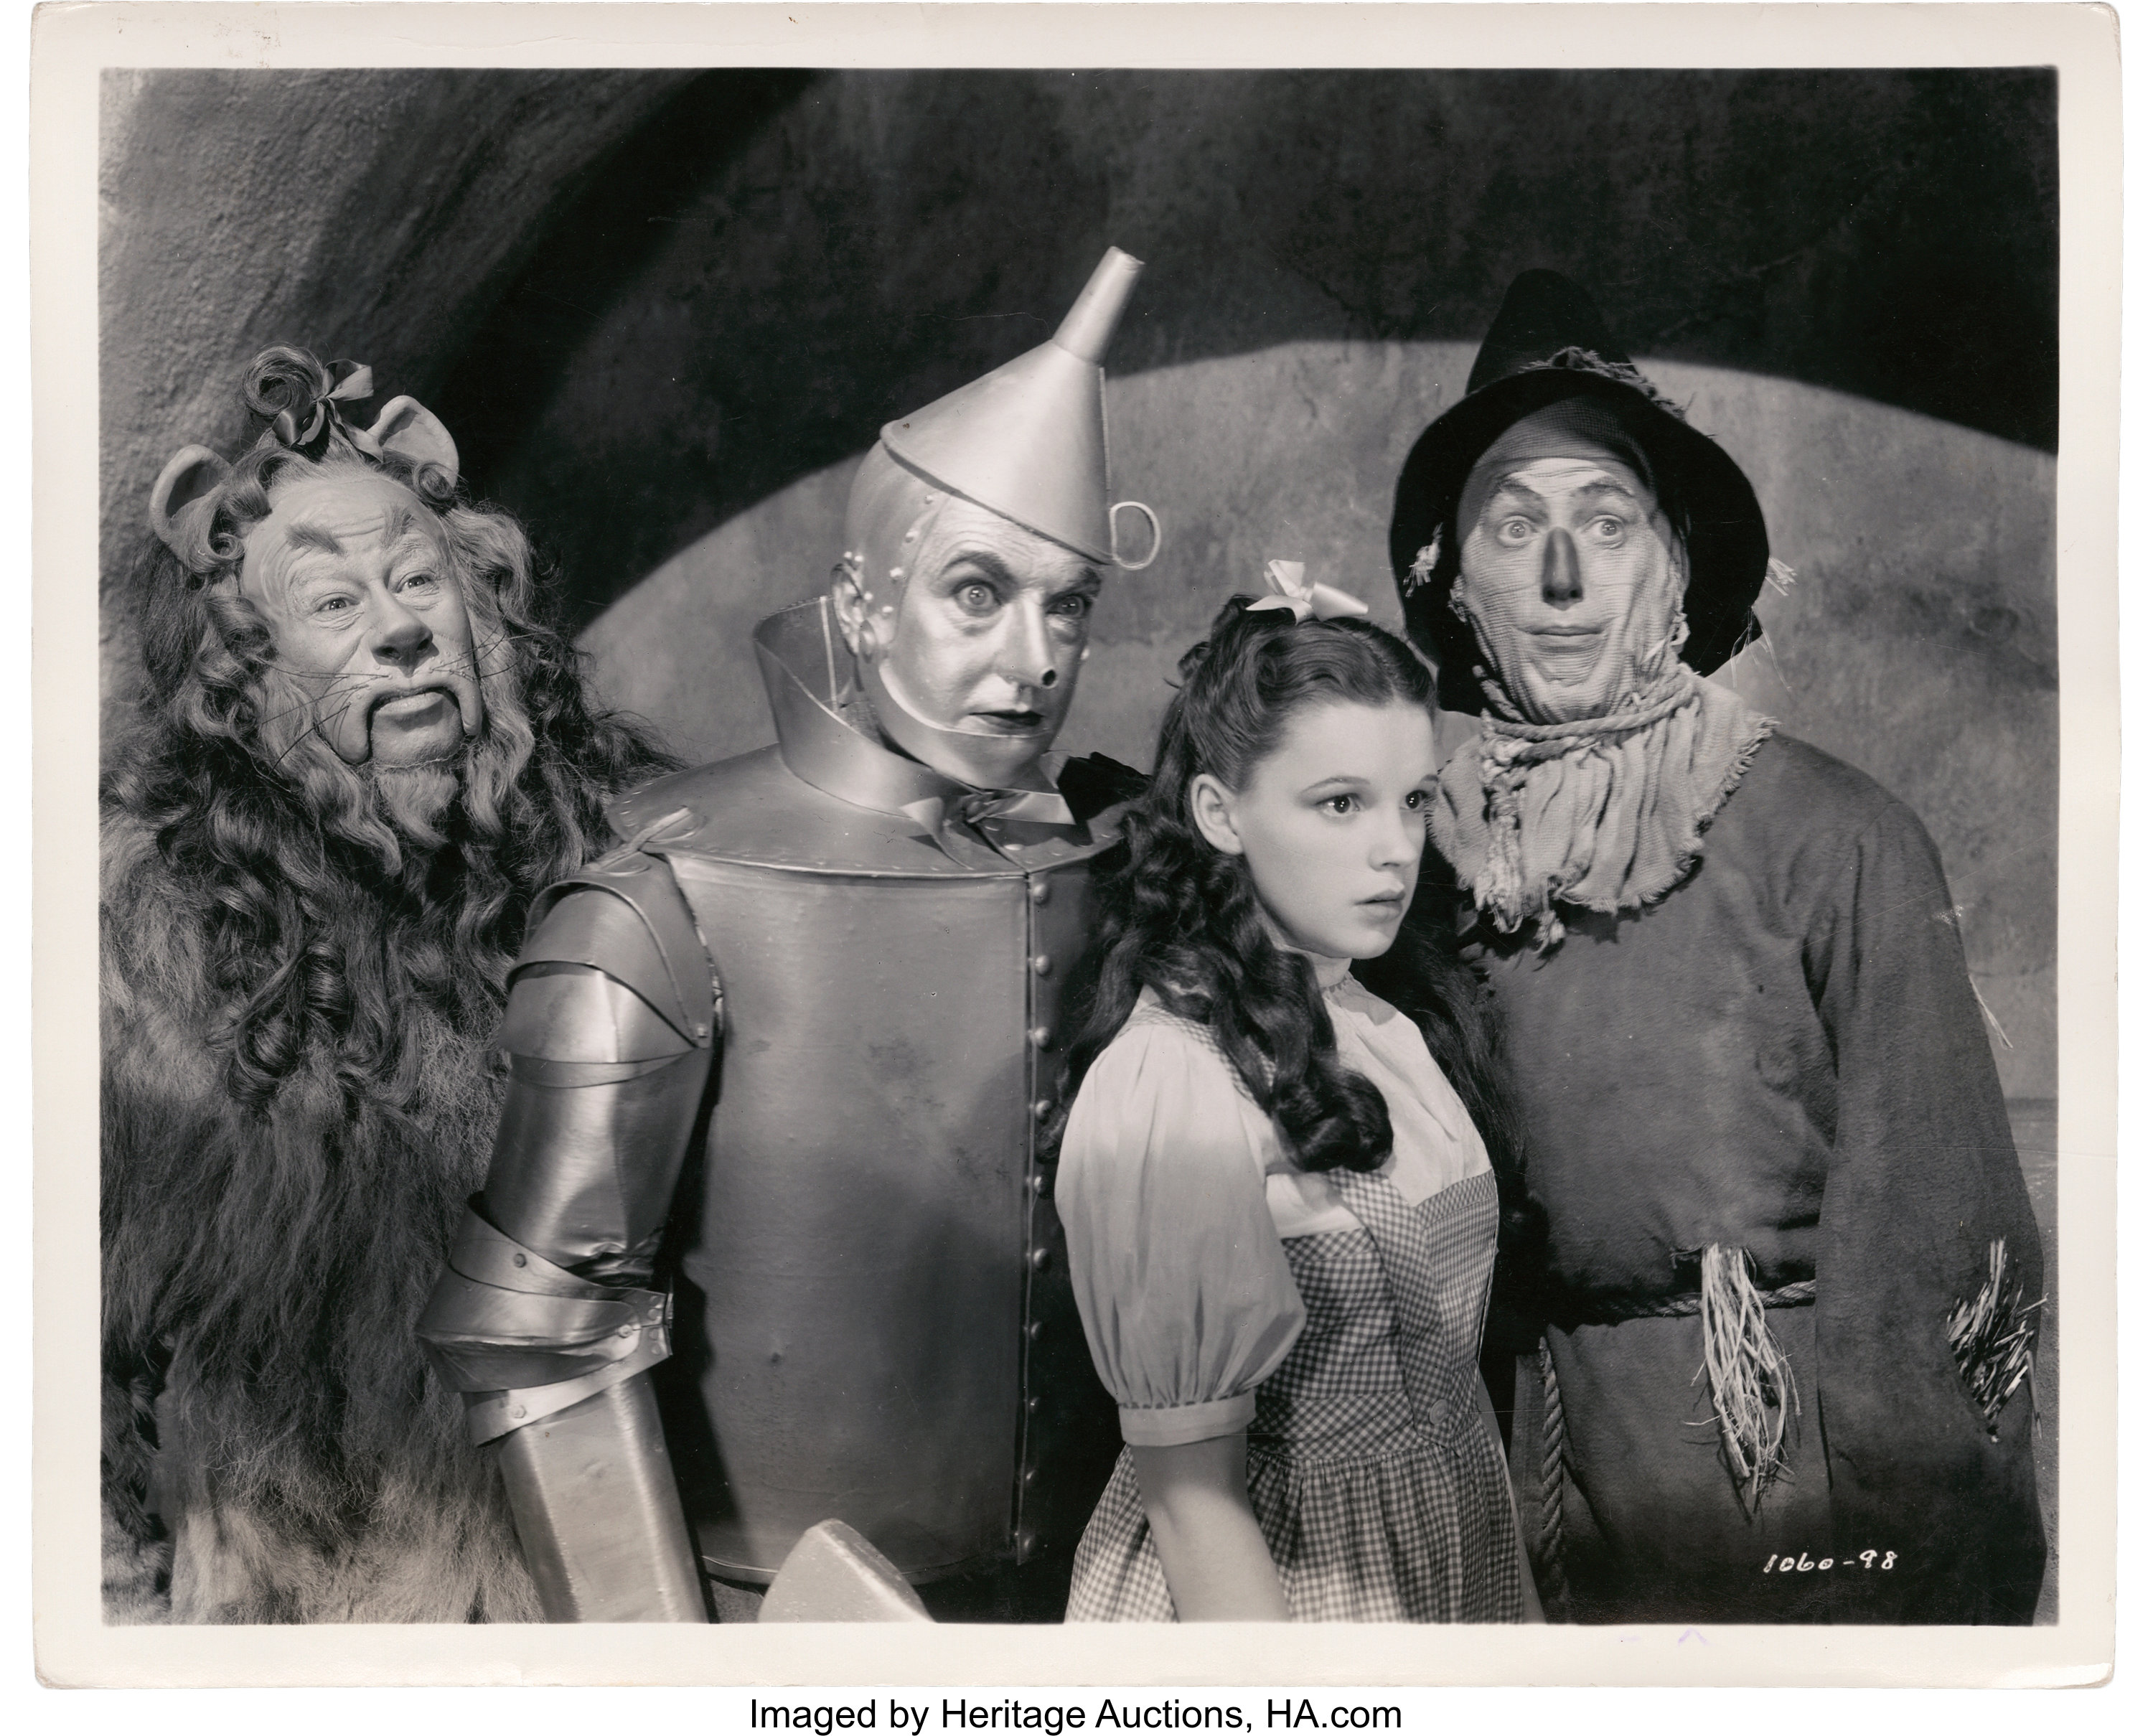 WO-10 The Wizard Of Oz Judy Garland Ray Bolger Bert Lahr Jack Haley 8x10 Photo